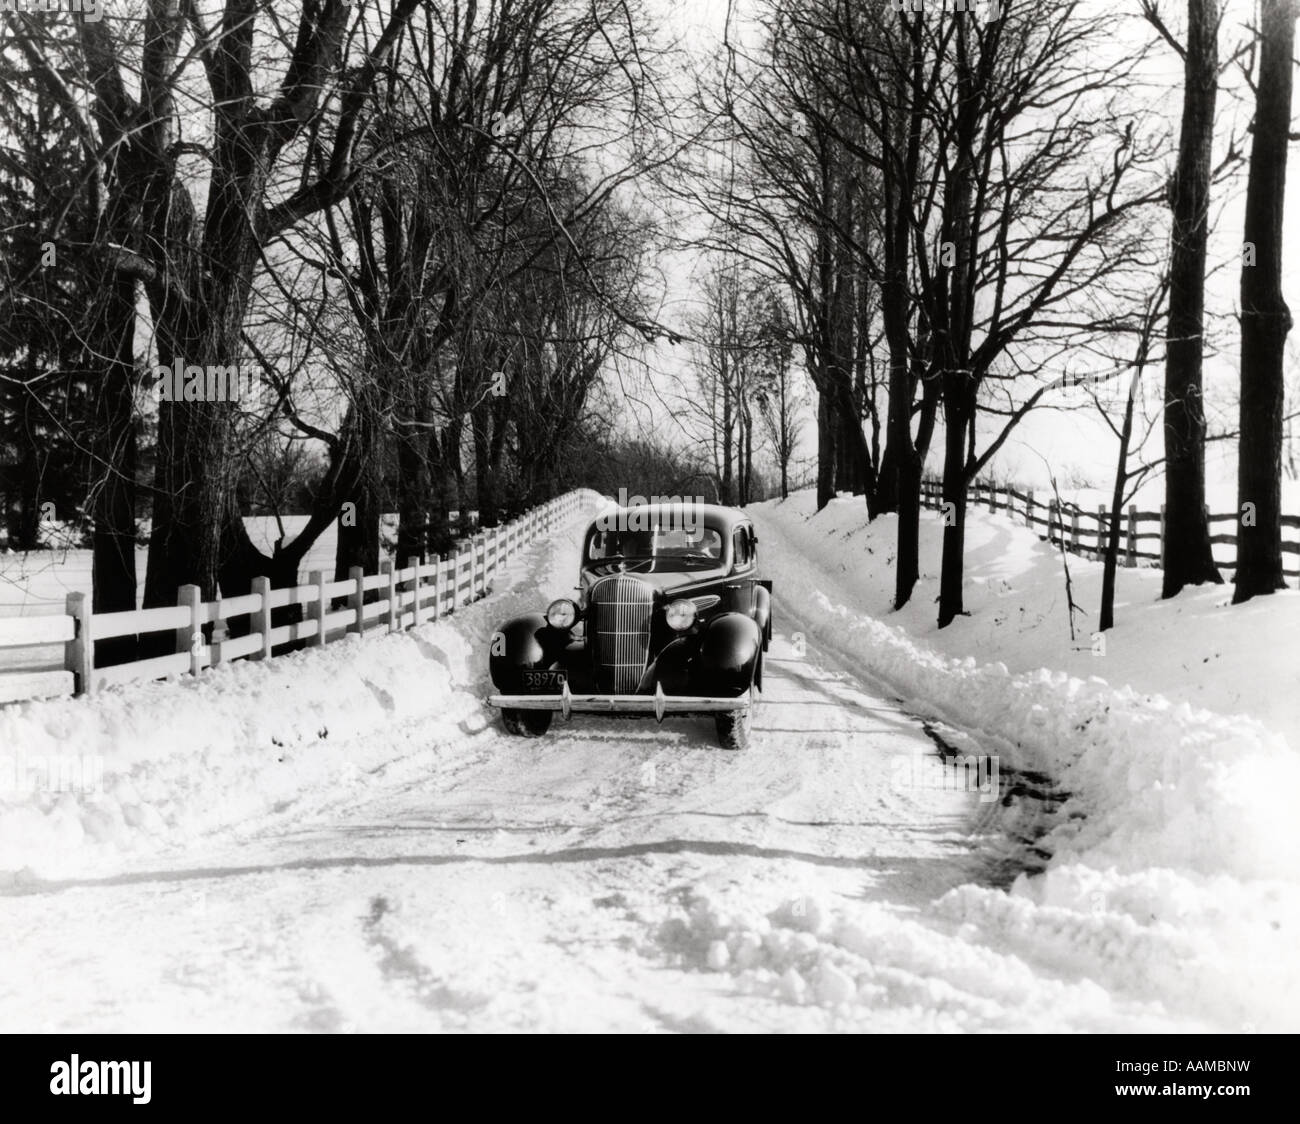 1930s CAR DRIVING DOWN SNOWY COUNTRY ROAD - Stock Image